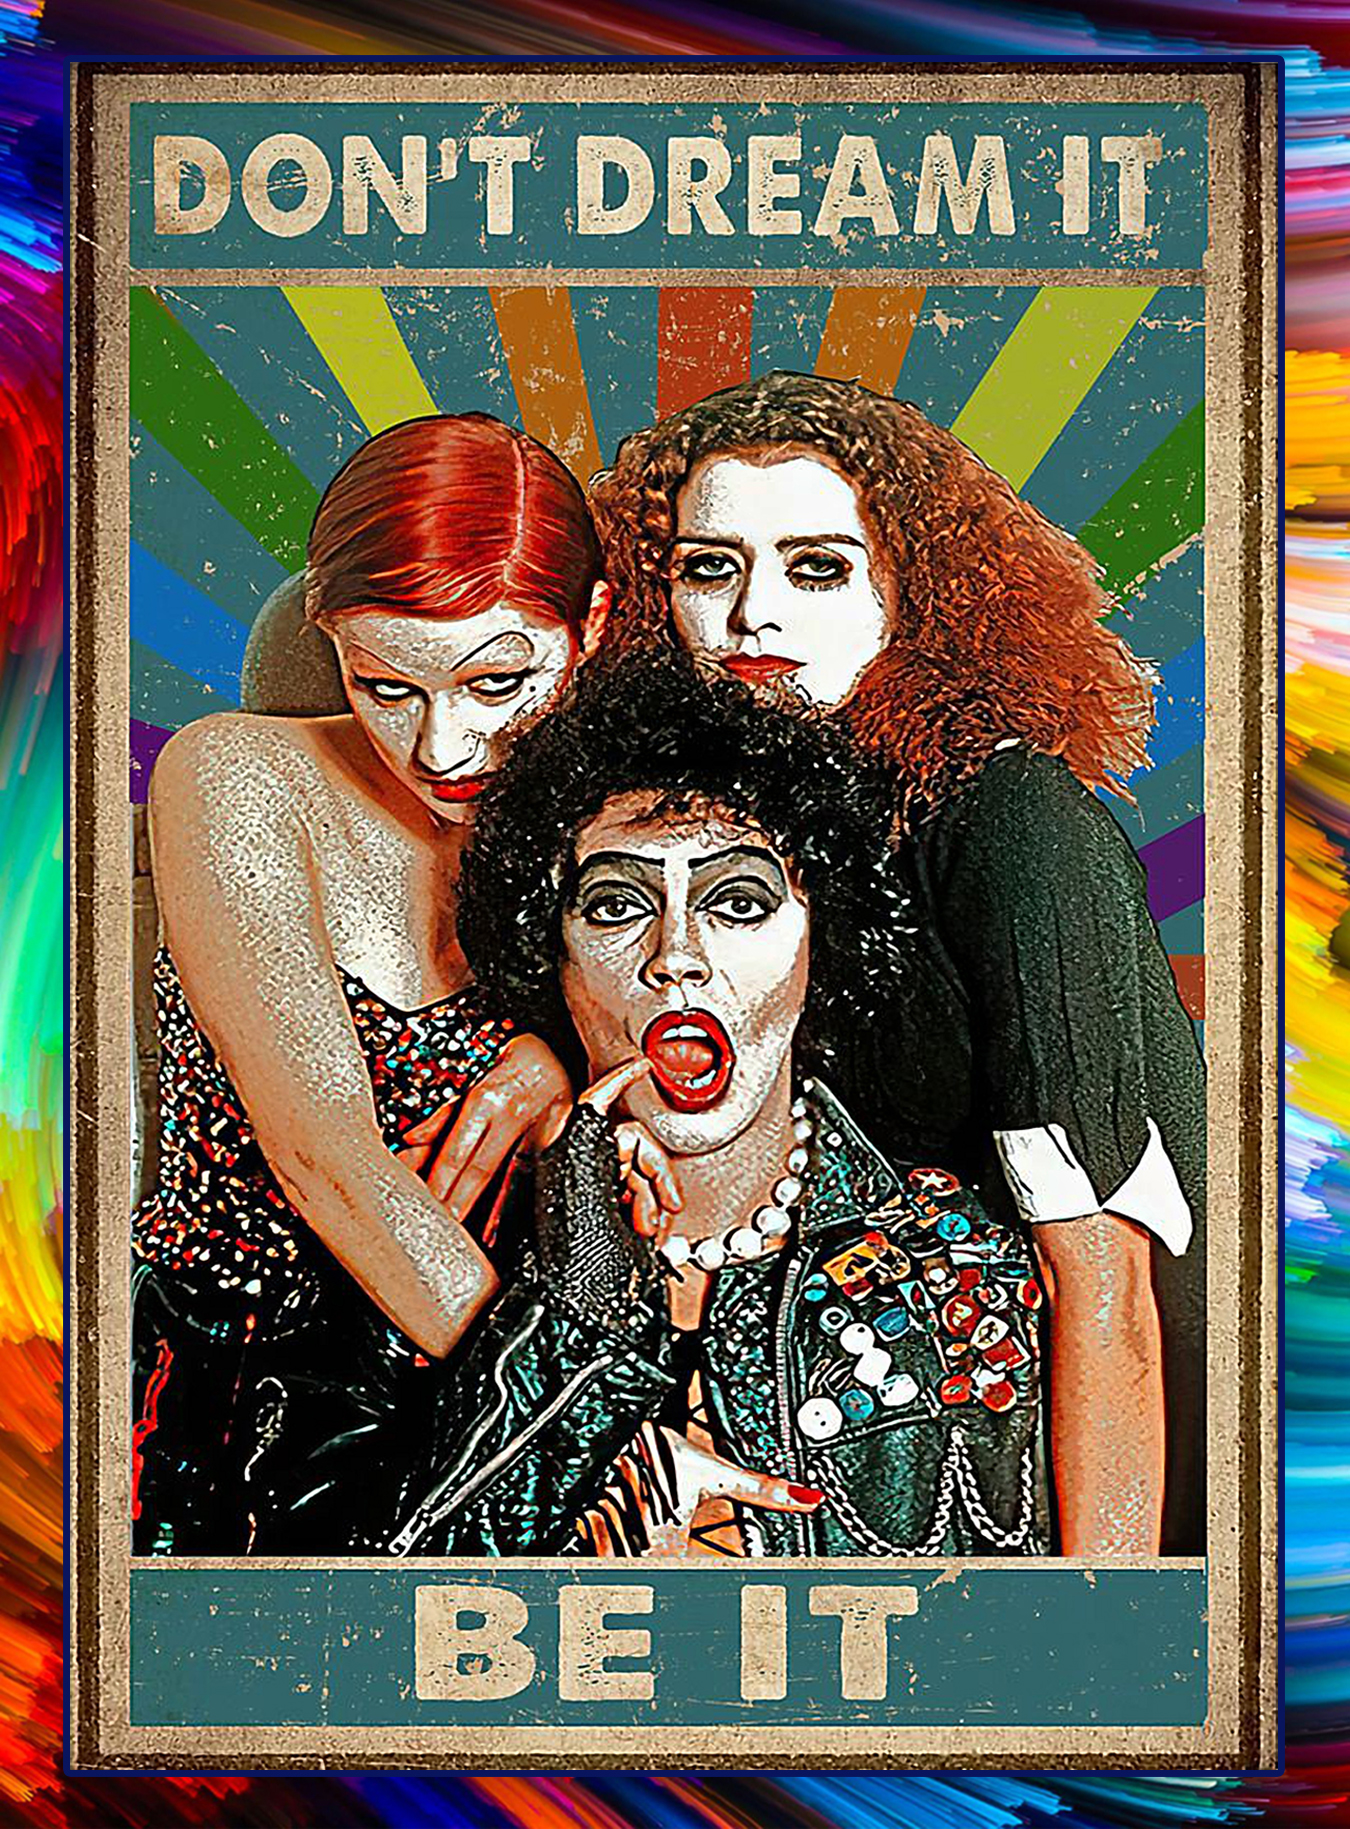 Rocky horror picture show don't dream be it poster - A3